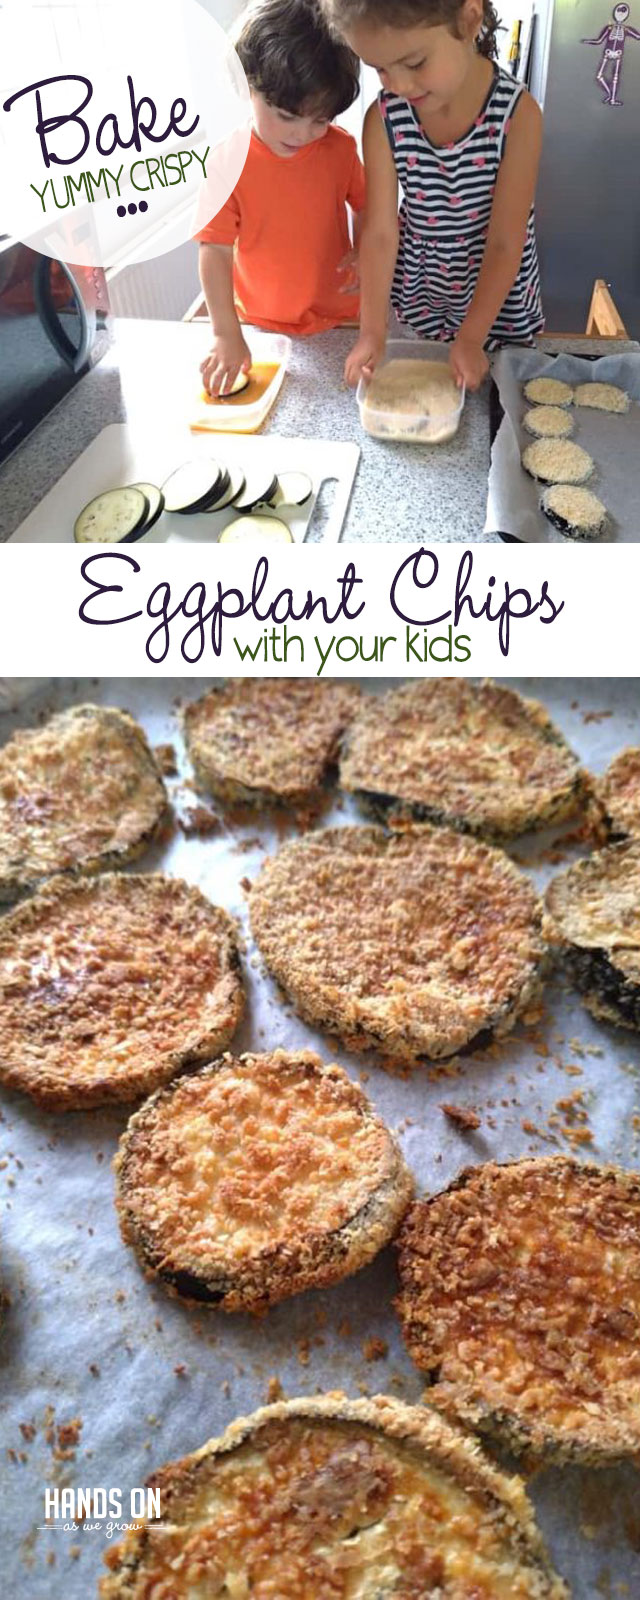 You'll love yummy eggplant chips with a simple recipe that are a snap to make with your kids!